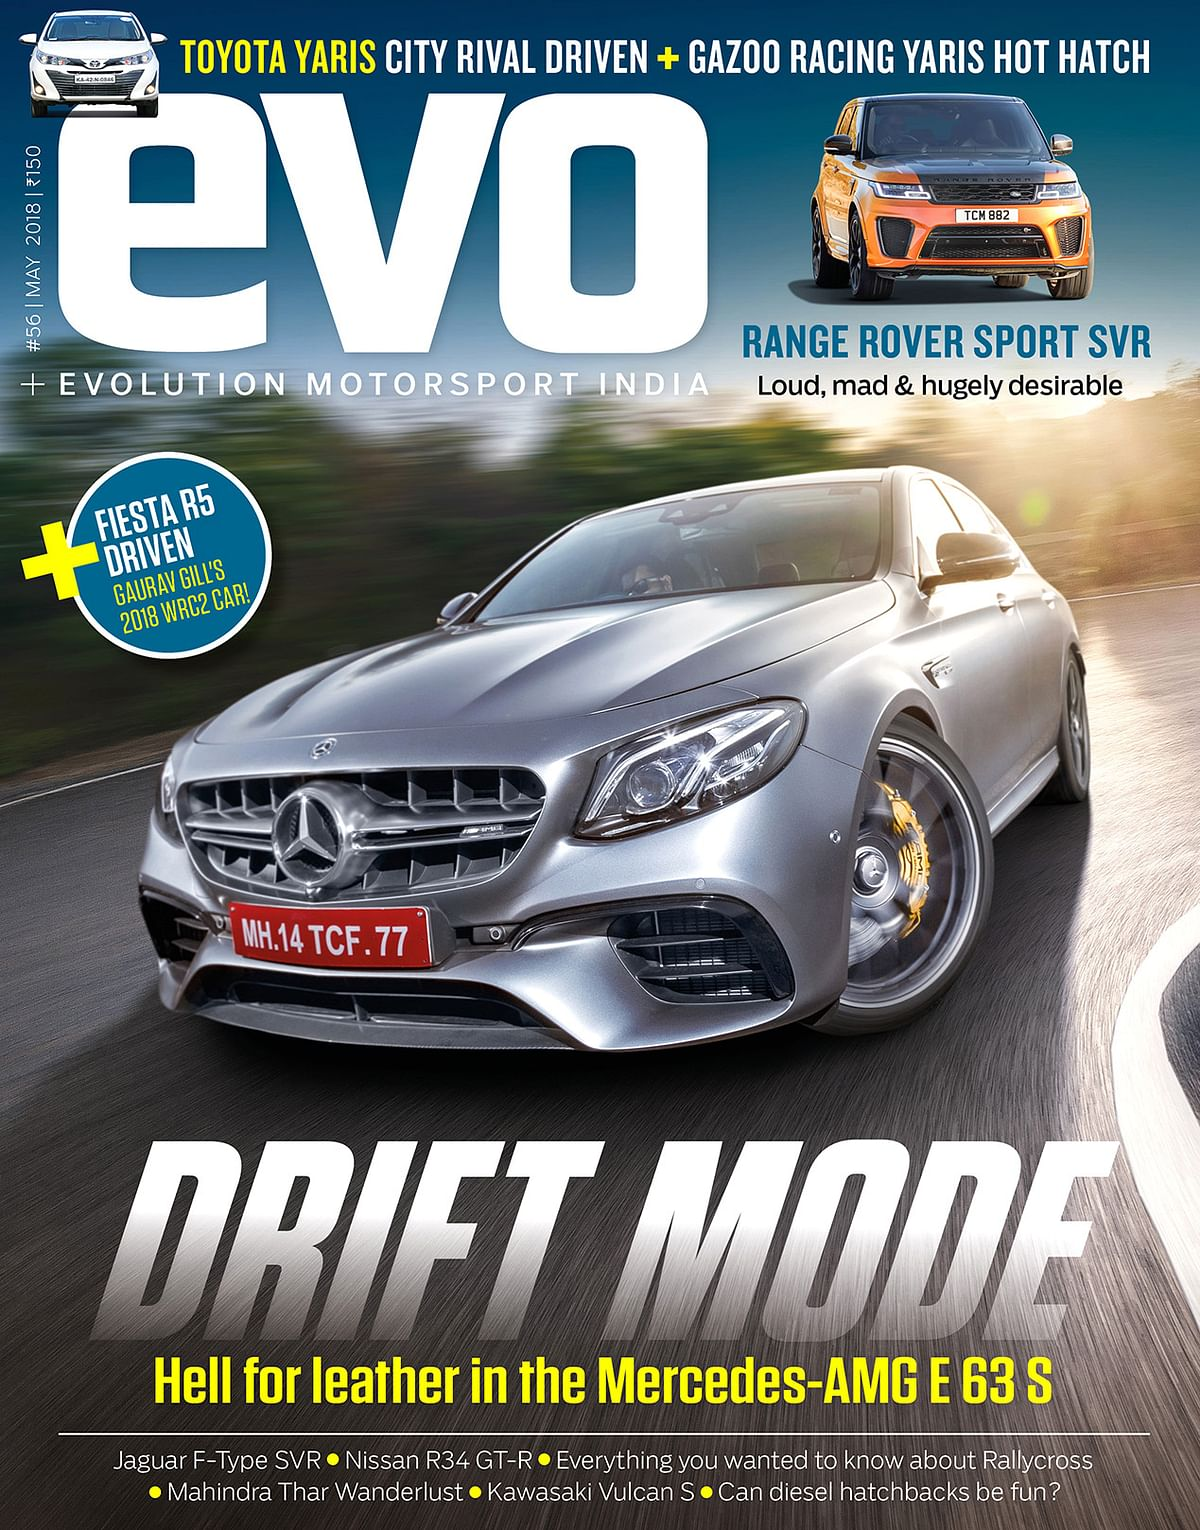 evo India May 2018 issue on stands now. Exclusive Merc-AMG E 63 S